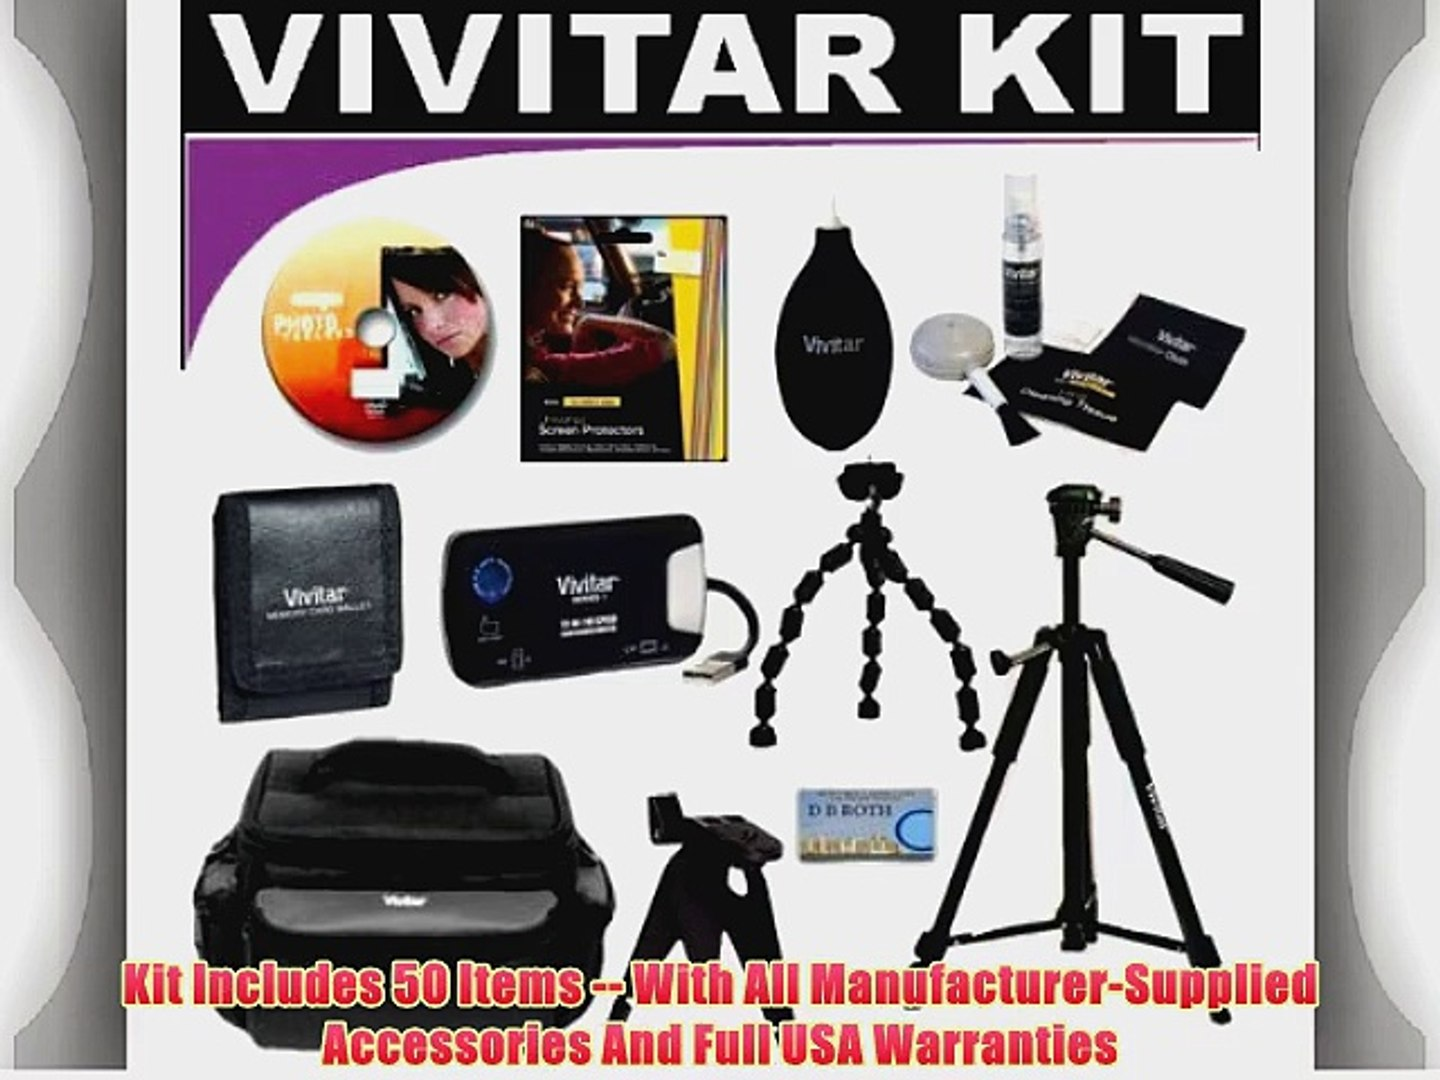 50 PC Fantasy Kit The Kit Of Your Dreams Which Includes Lenses Filters Cases Battery Grip Batteries